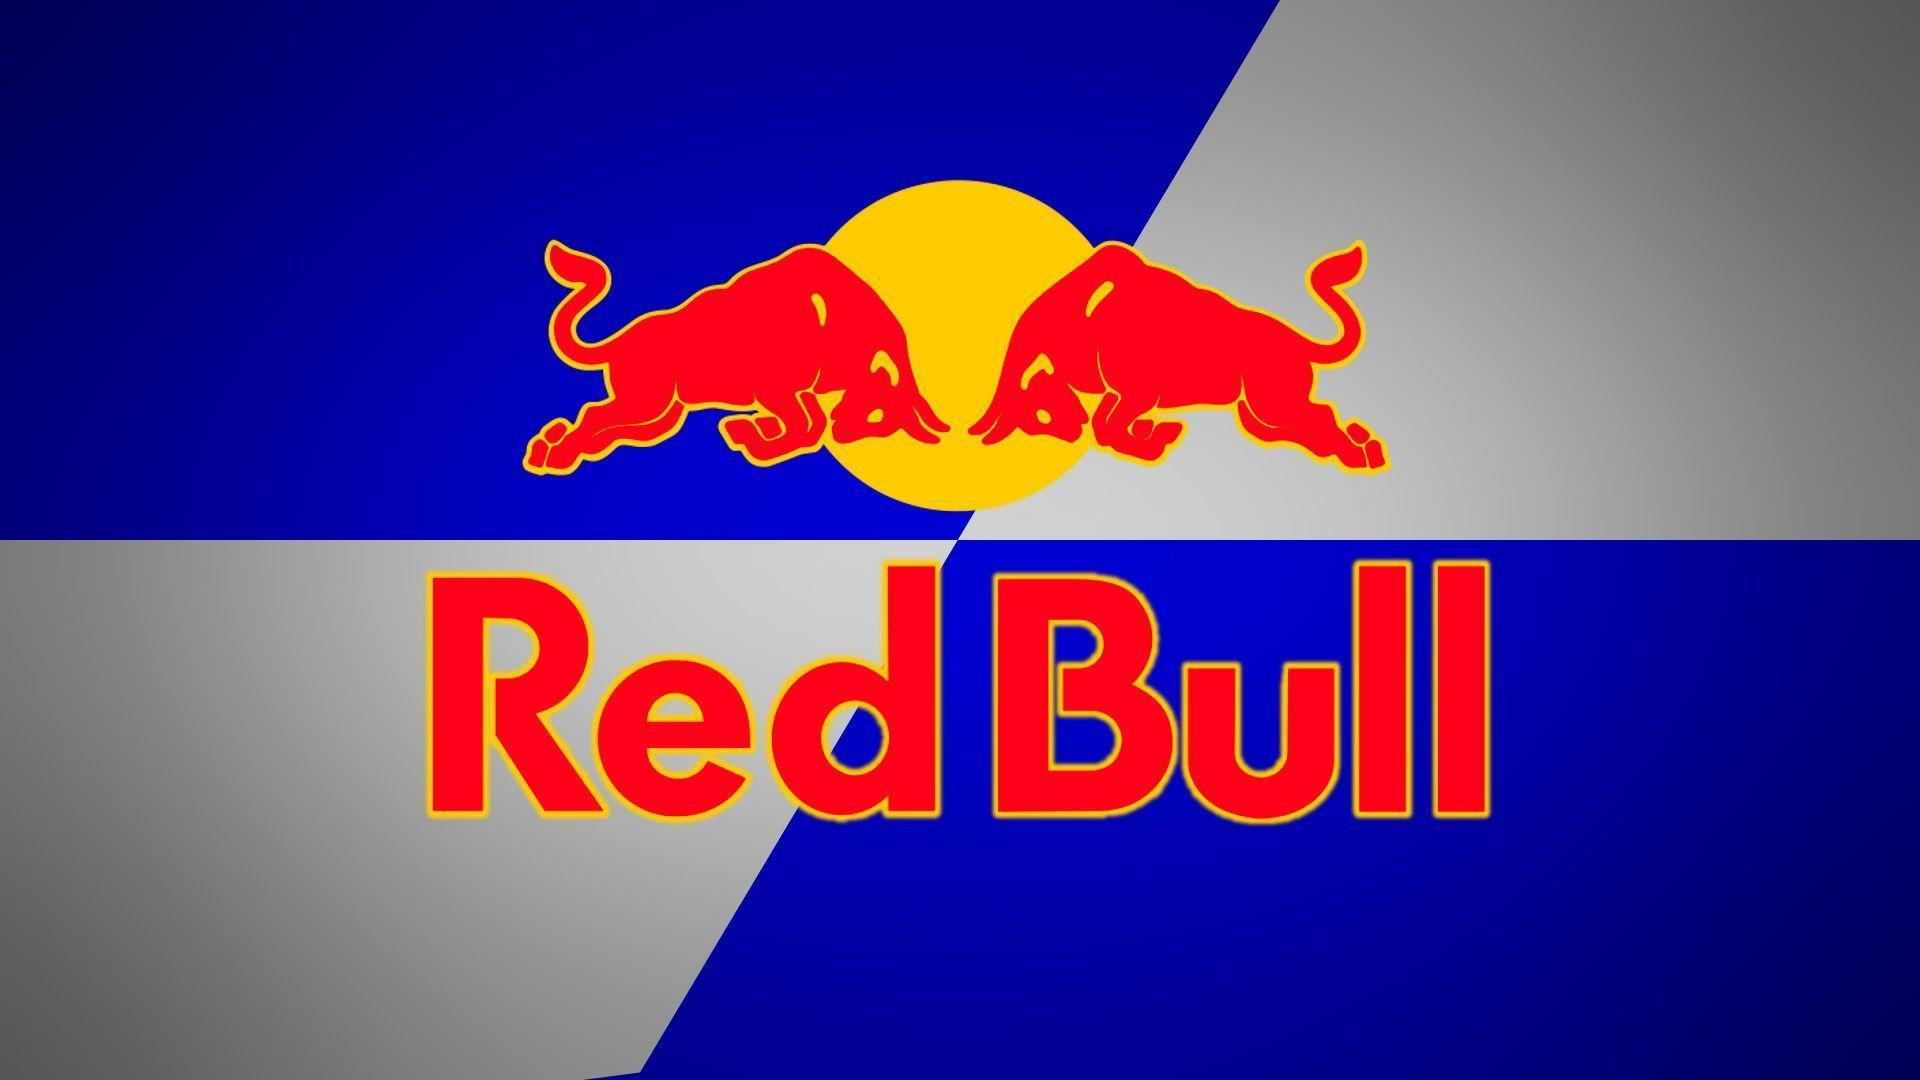 Red Bull Wallpapers Top Free Red Bull Backgrounds Wallpaperaccess